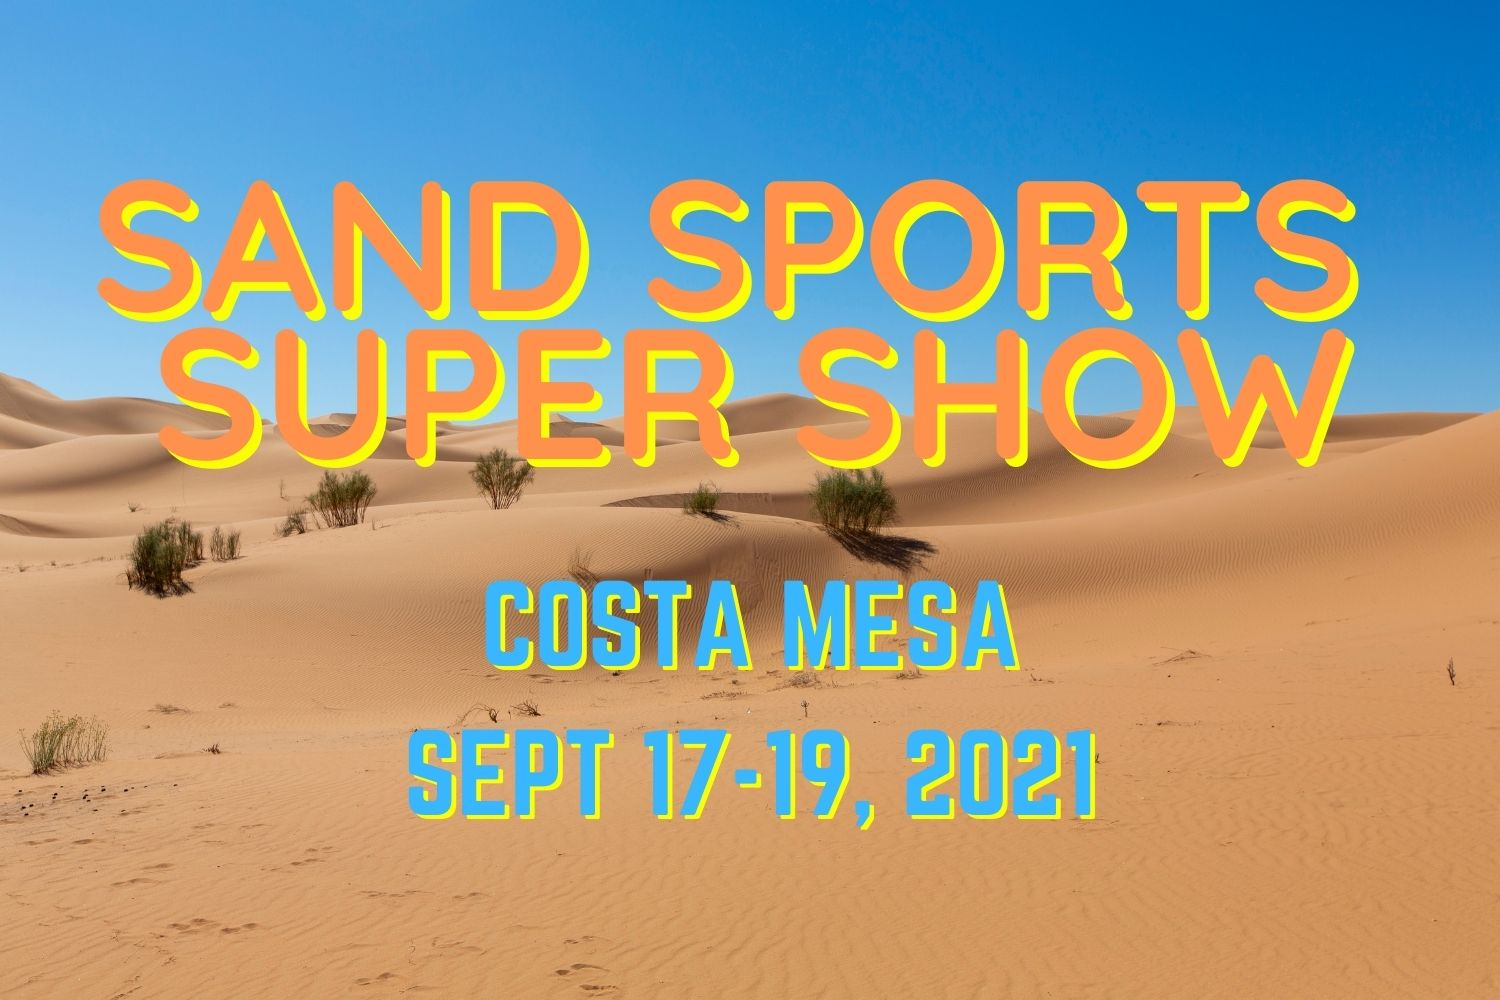 Acumen is exhibiting at Sand Sports Super Show 2021 in Costa Mesa